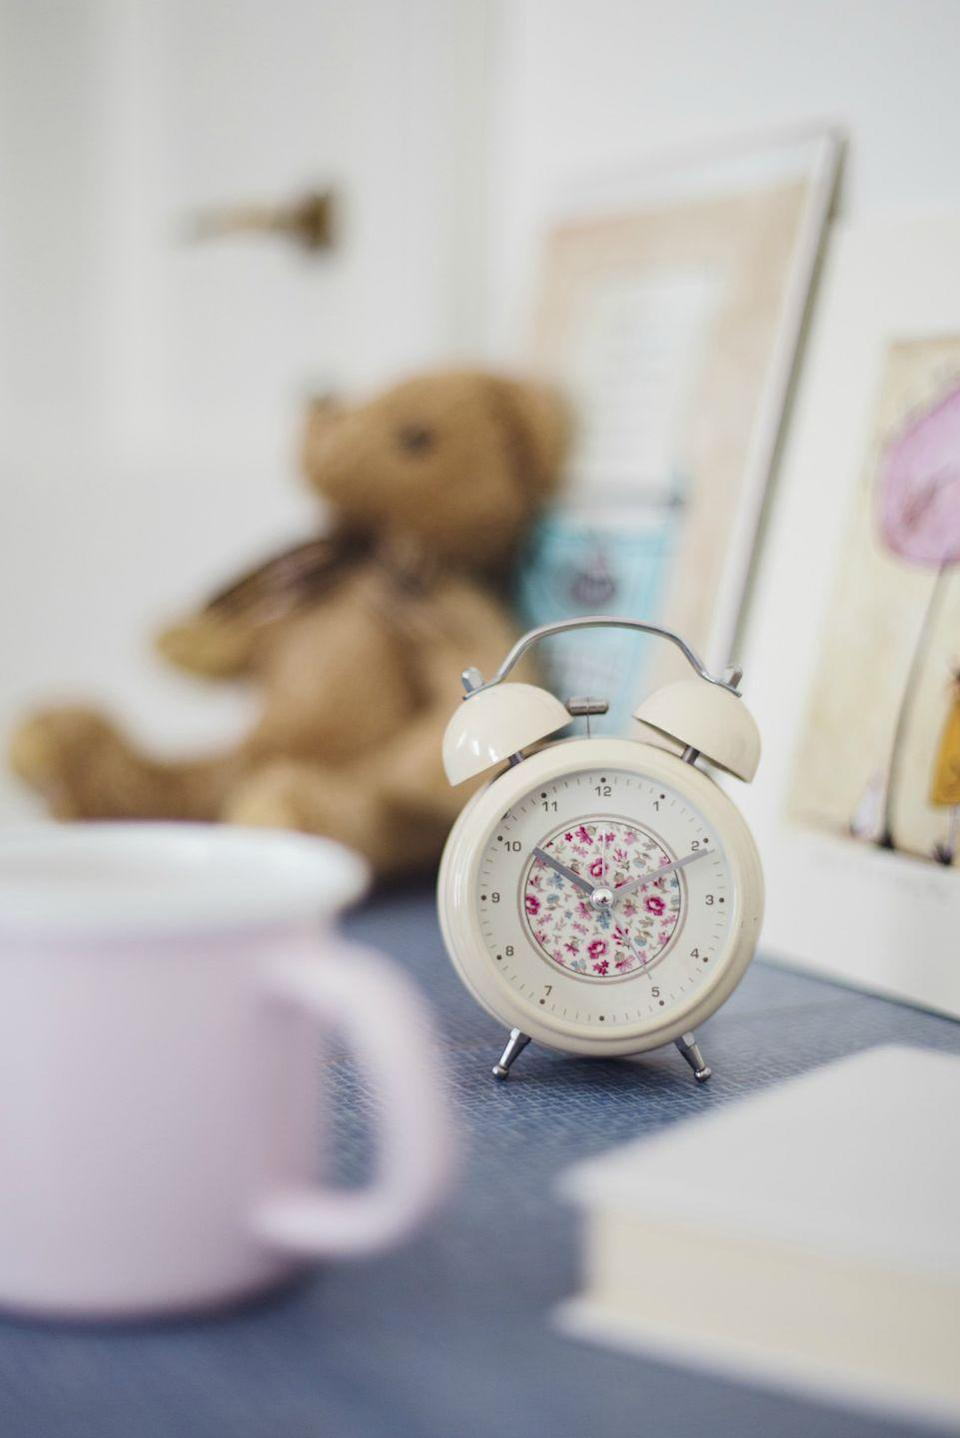 """<p>Give kids their own <a href=""""https://www.womansday.com/home/a22653534/philips-somneo-sunrise-alarm-clock/"""" rel=""""nofollow noopener"""" target=""""_blank"""" data-ylk=""""slk:alarm clocks"""" class=""""link rapid-noclick-resp"""">alarm clocks</a> and post morning checklists of things they need to get done before<a href=""""https://www.womansday.com/back-to-school/"""" rel=""""nofollow noopener"""" target=""""_blank"""" data-ylk=""""slk:heading off to school"""" class=""""link rapid-noclick-resp""""> heading off to school</a>. It'll teach them responsibility <em>and </em>you'll have less stuff to organize yourself. </p><p><strong><a class=""""link rapid-noclick-resp"""" href=""""https://www.amazon.com/dp/B078Z4KFDR/?tag=syn-yahoo-20&ascsubtag=%5Bartid%7C10070.g.3310%5Bsrc%7Cyahoo-us"""" rel=""""nofollow noopener"""" target=""""_blank"""" data-ylk=""""slk:SHOP KIDS' ALARMS"""">SHOP KIDS' ALARMS</a></strong></p>"""